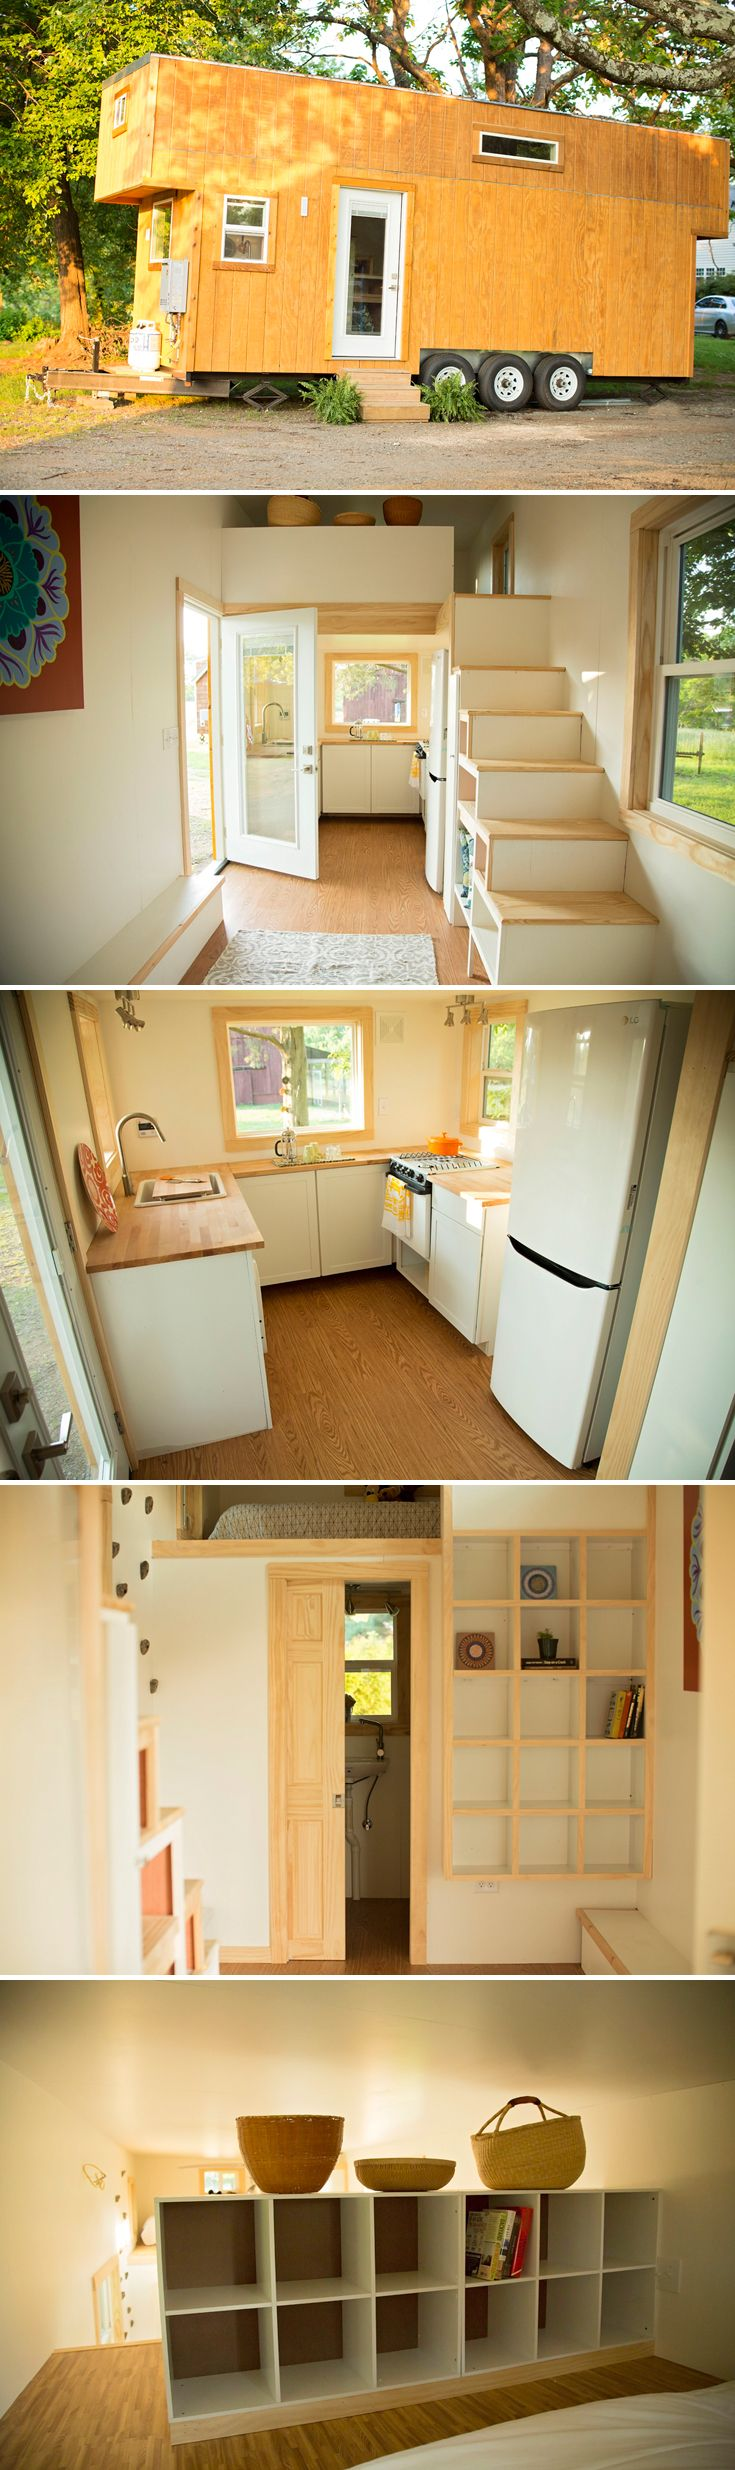 405 best Tiny House Love images on Pinterest Tiny living Small